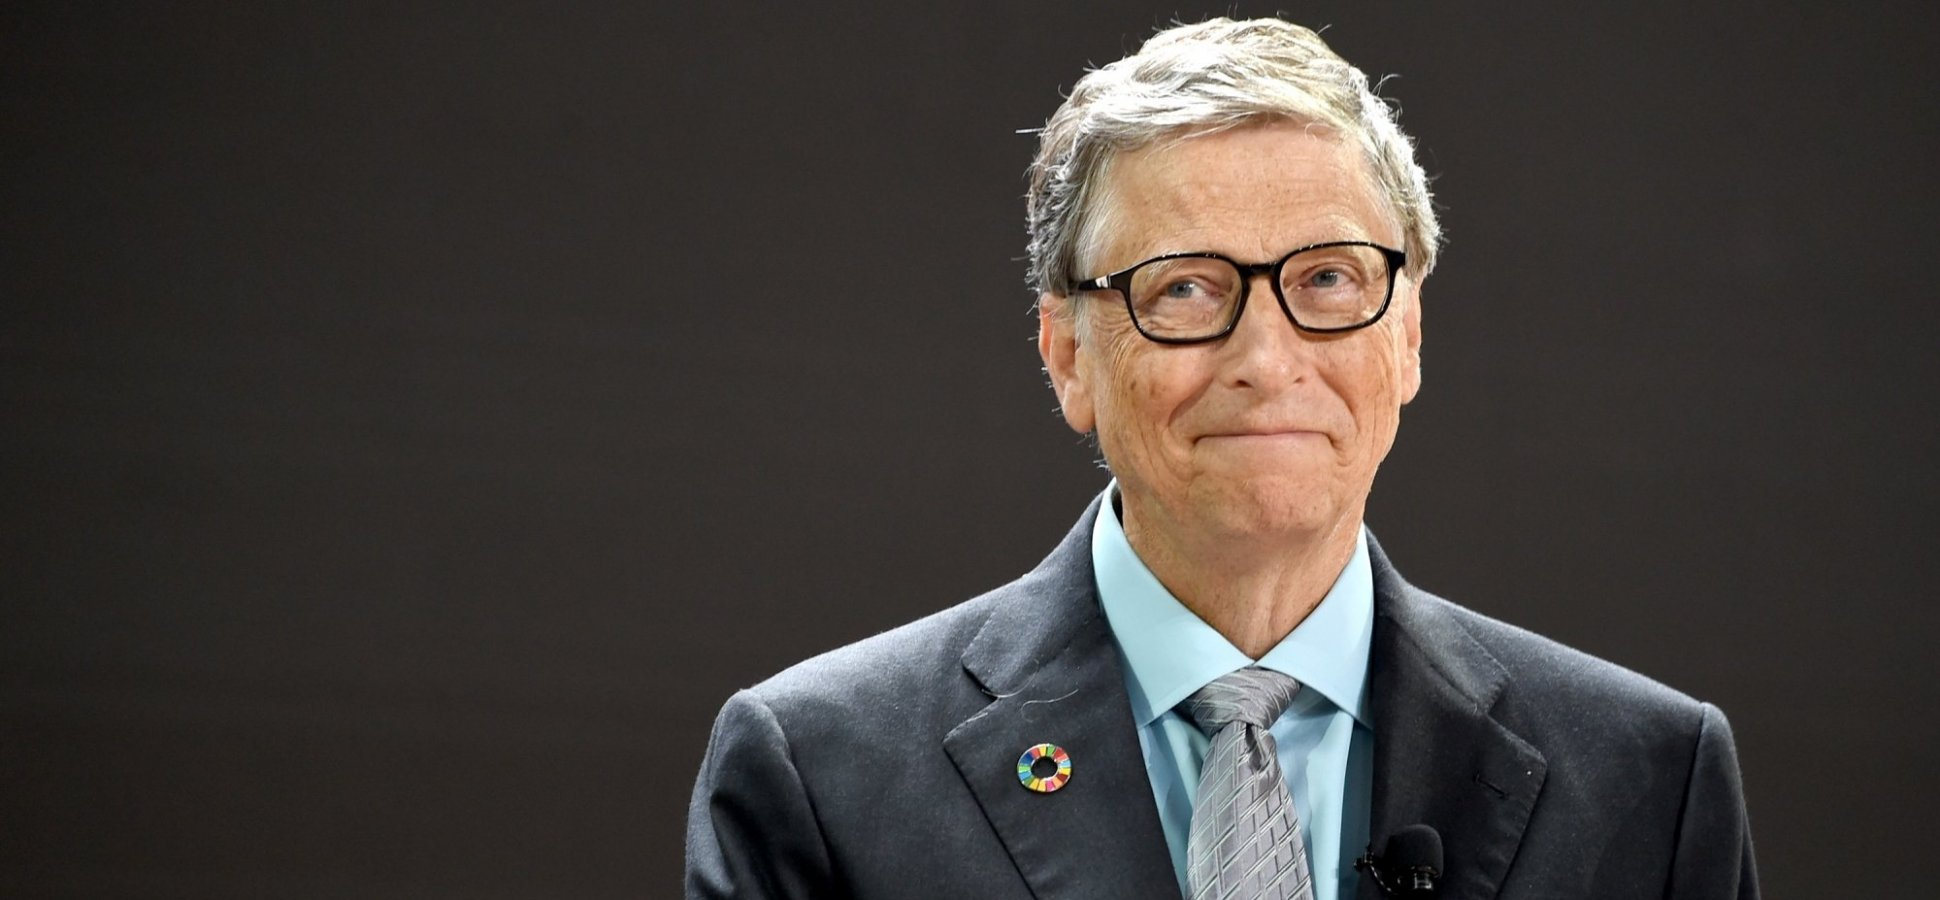 Bill Gates Says He is Happy at 64 Because He Prioritizes These 4 Things